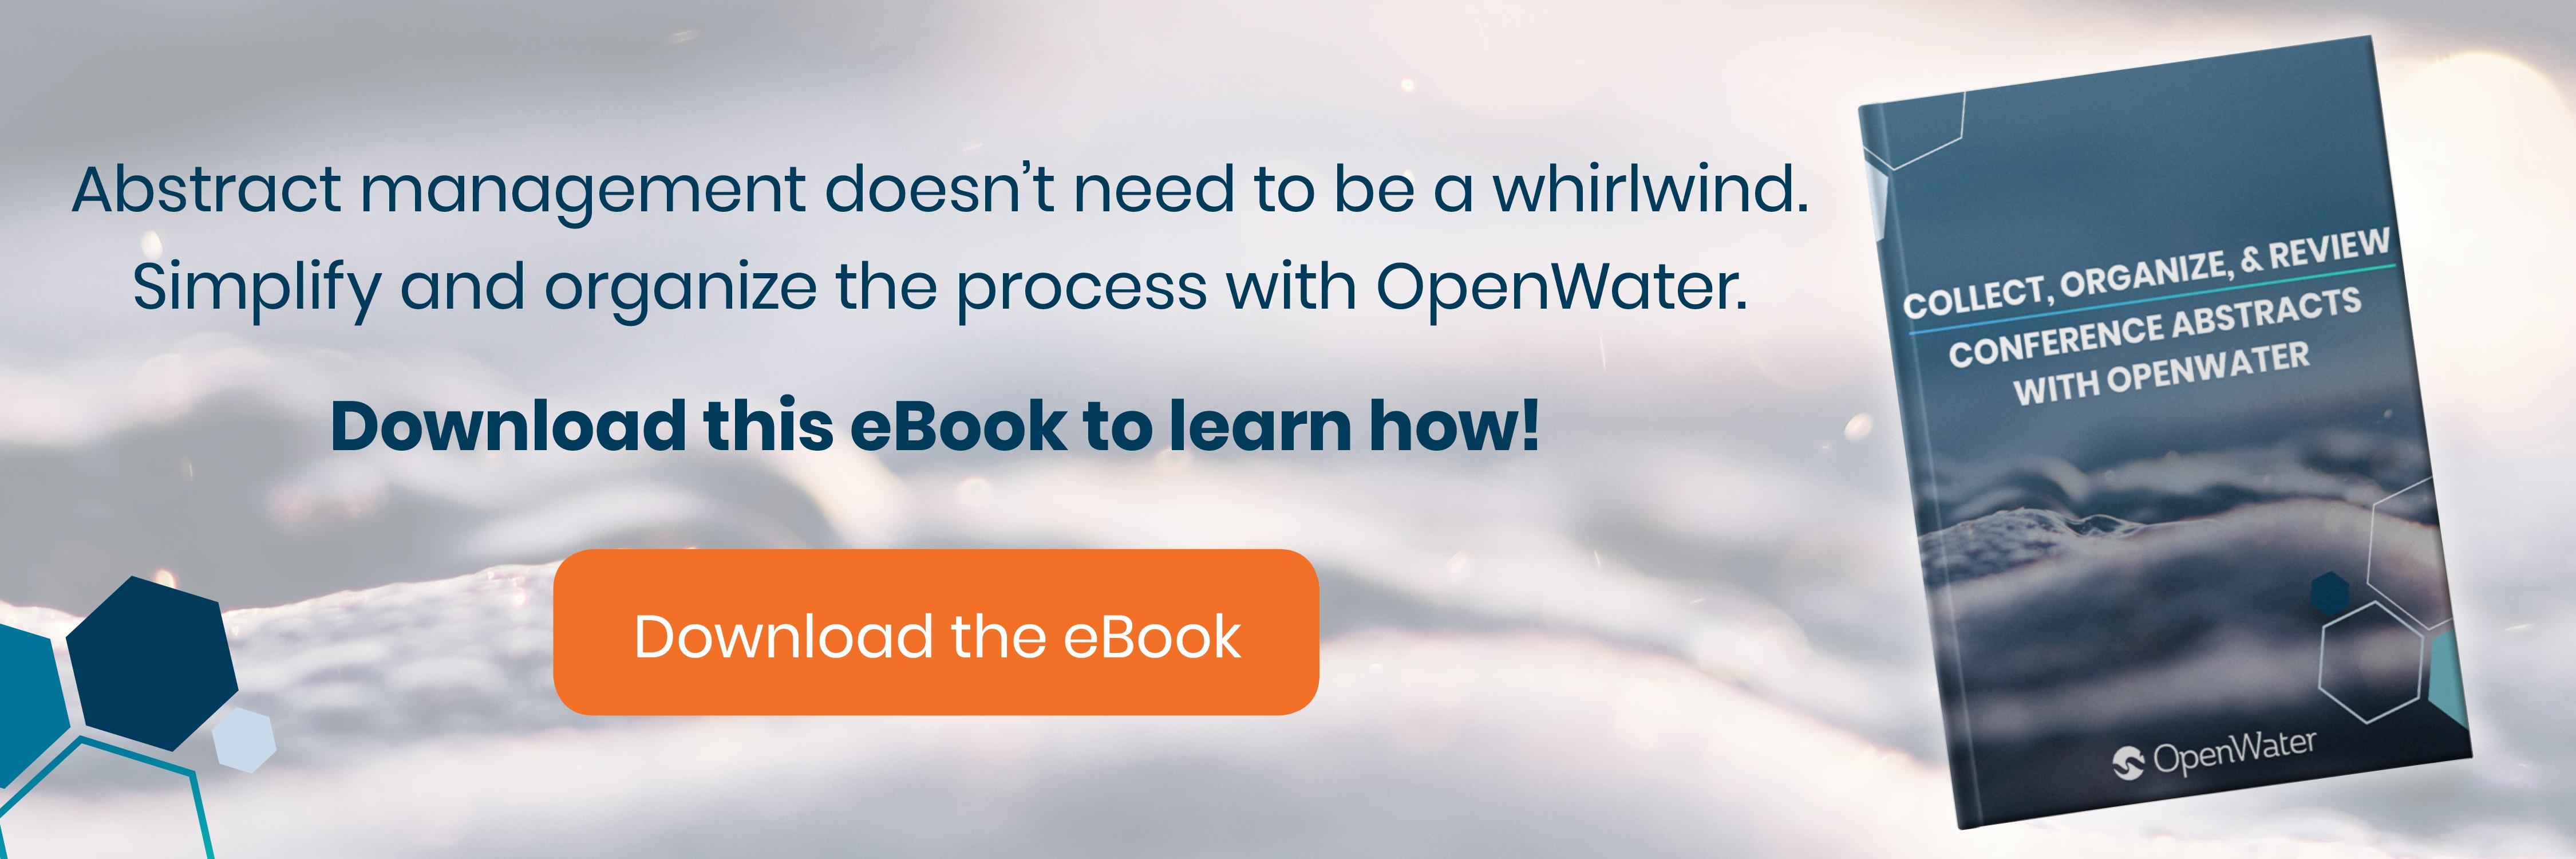 Collect, Organize, and Review Conference Abstracts with Openwater